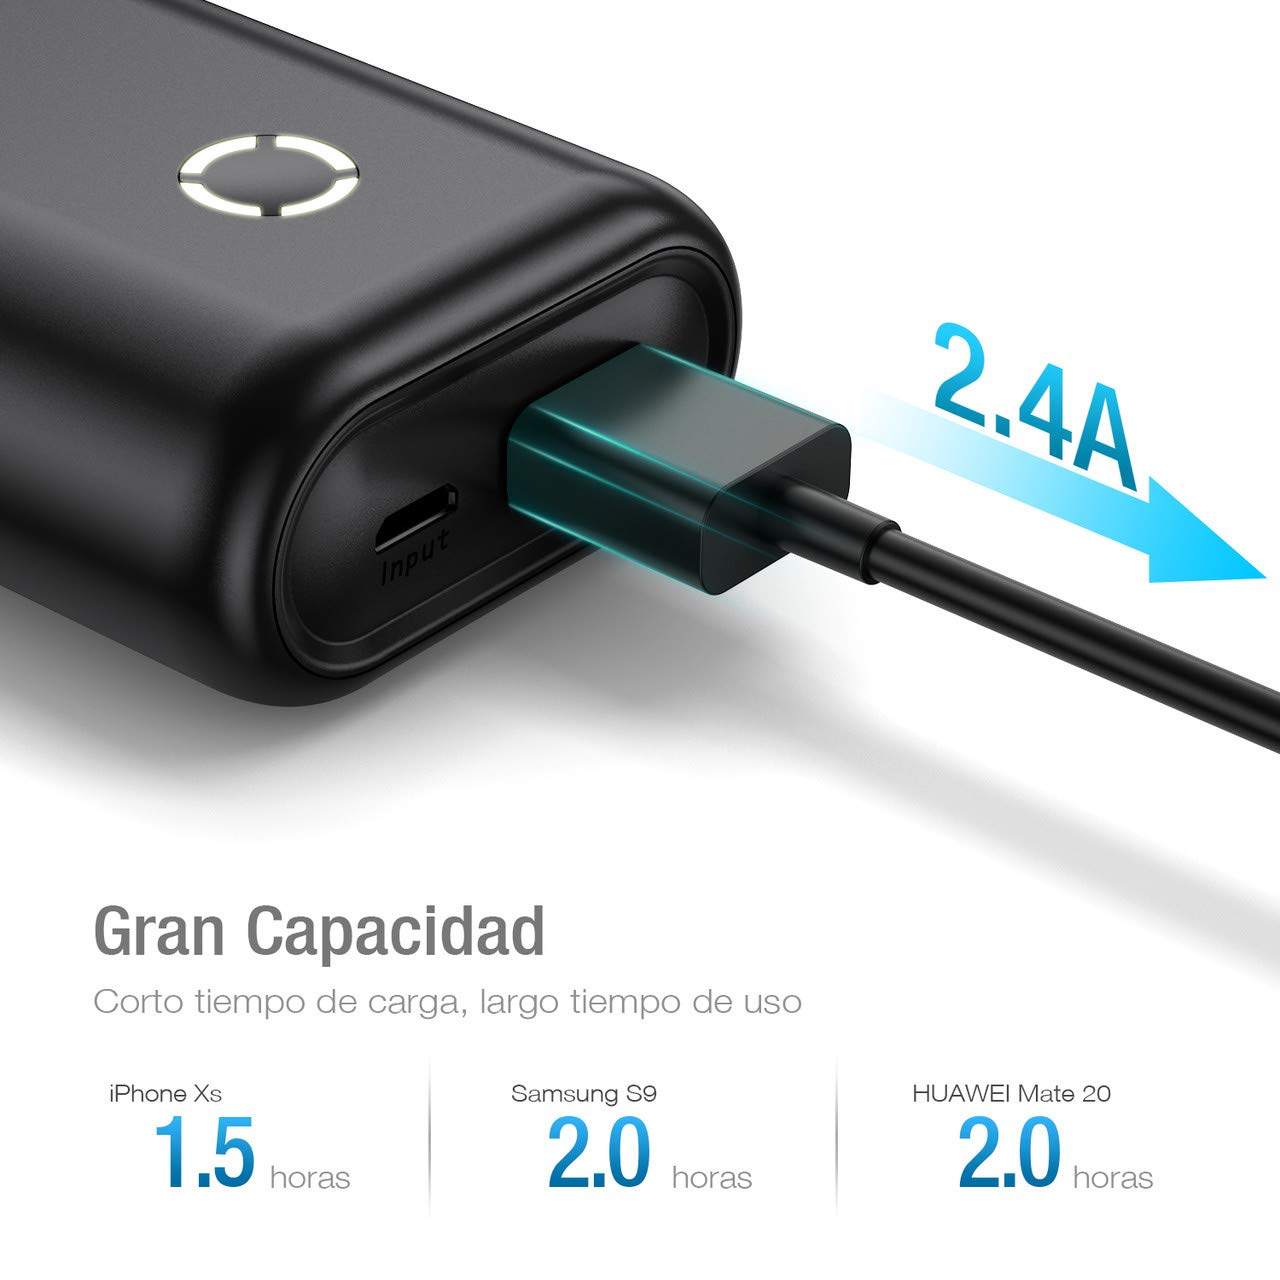 POWERADD Energy Cell 10000mAh Batería Externa Power Bank Cargador Portátil Salida de 2.4A para iPhone,Samsung,Tablets y más Dispositivos-Negro